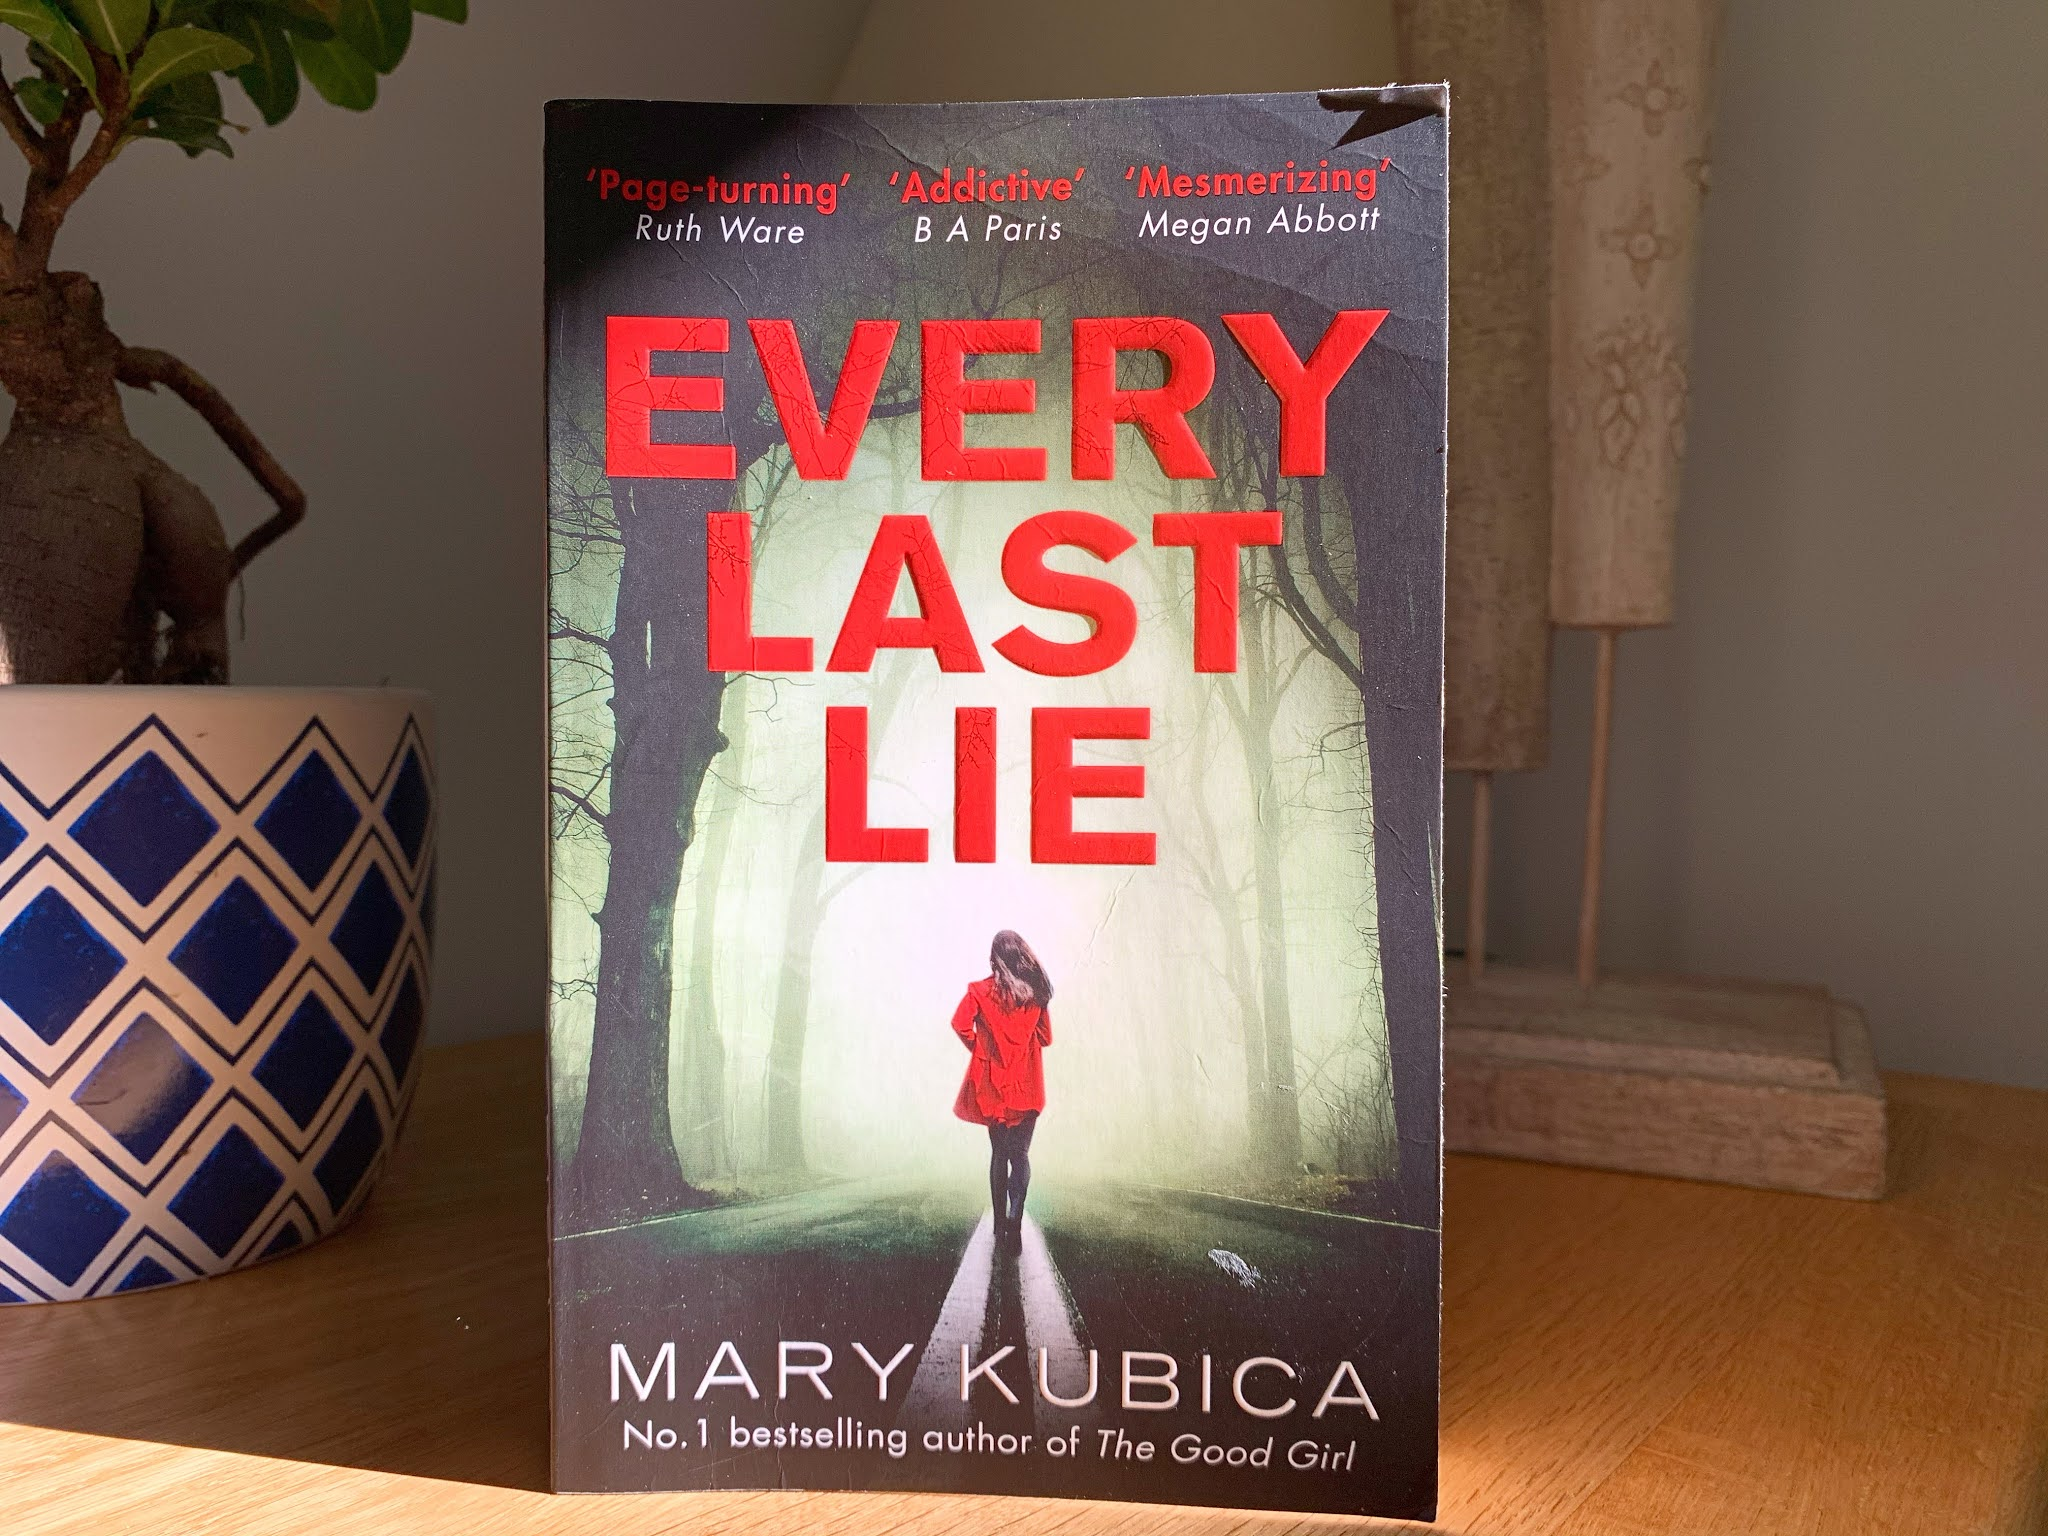 Every Last Lie by Maria Kubica book on a shelf